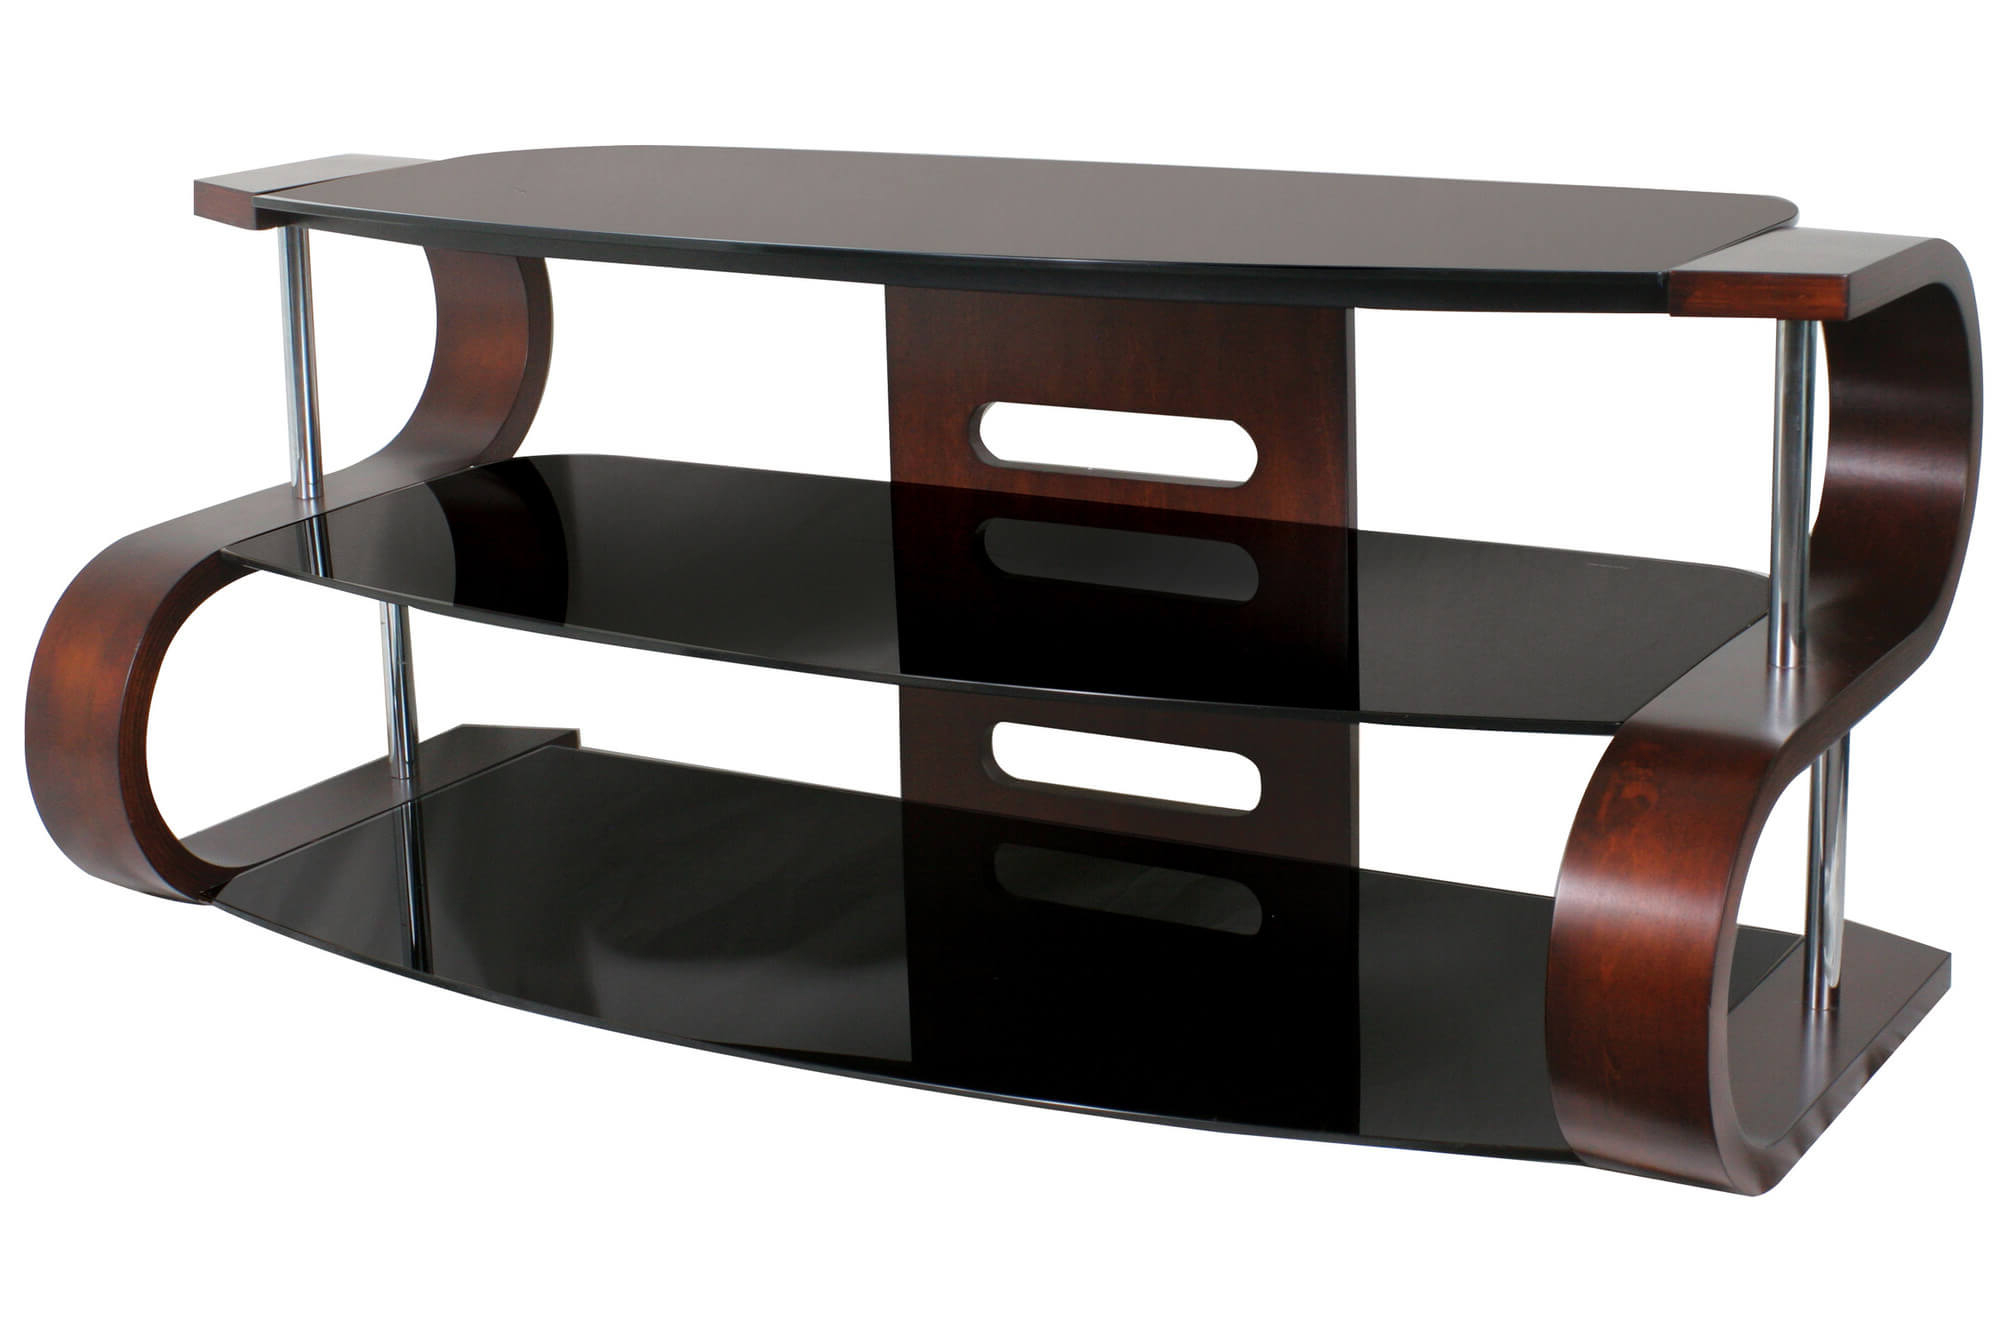 16 Types Of Tv Stands (comprehensive Buying Guide) Inside Gunmetal Media Console Tables (View 18 of 20)